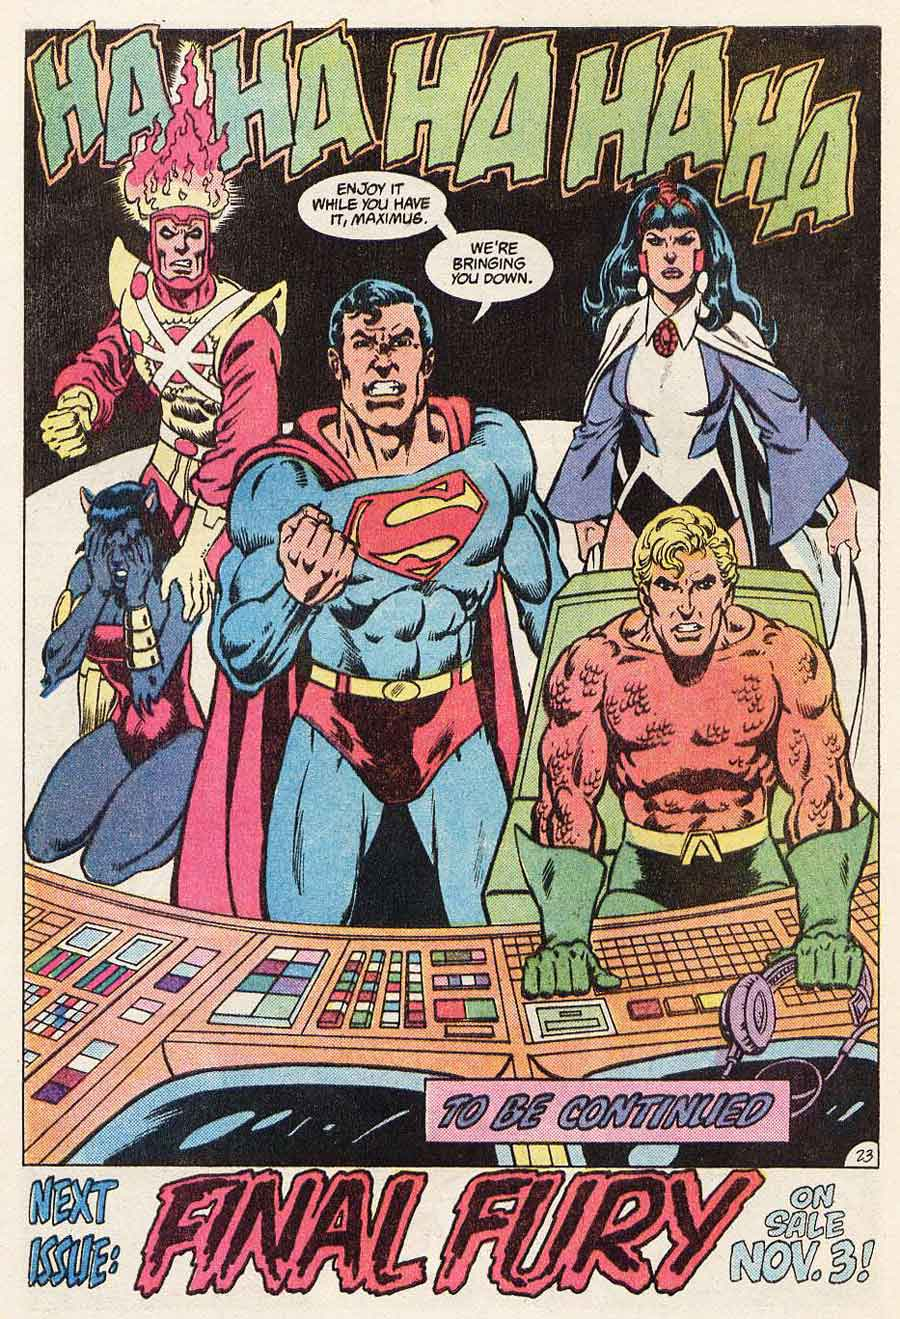 Justice League of America #222 by Gerry Conway, Chuck Patton and Romeo Tanghal